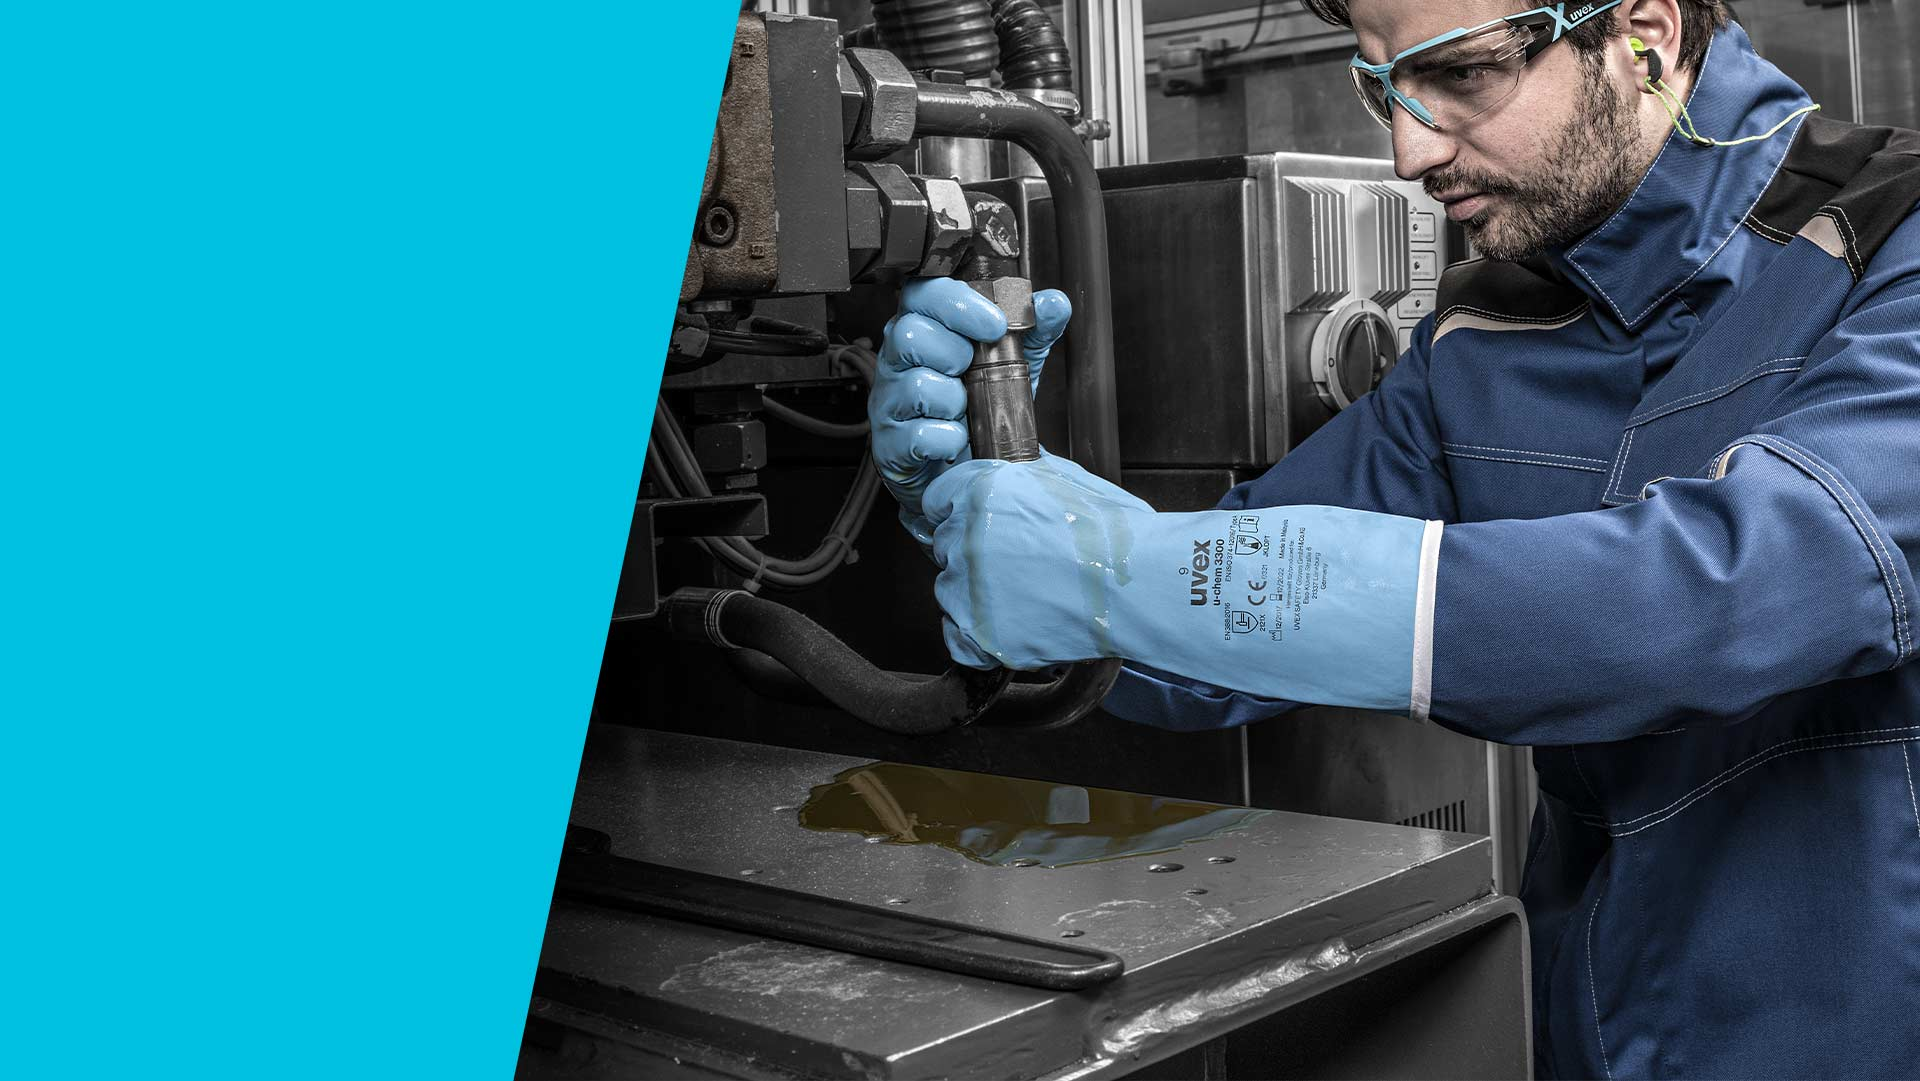 uvex chemical protection gloves